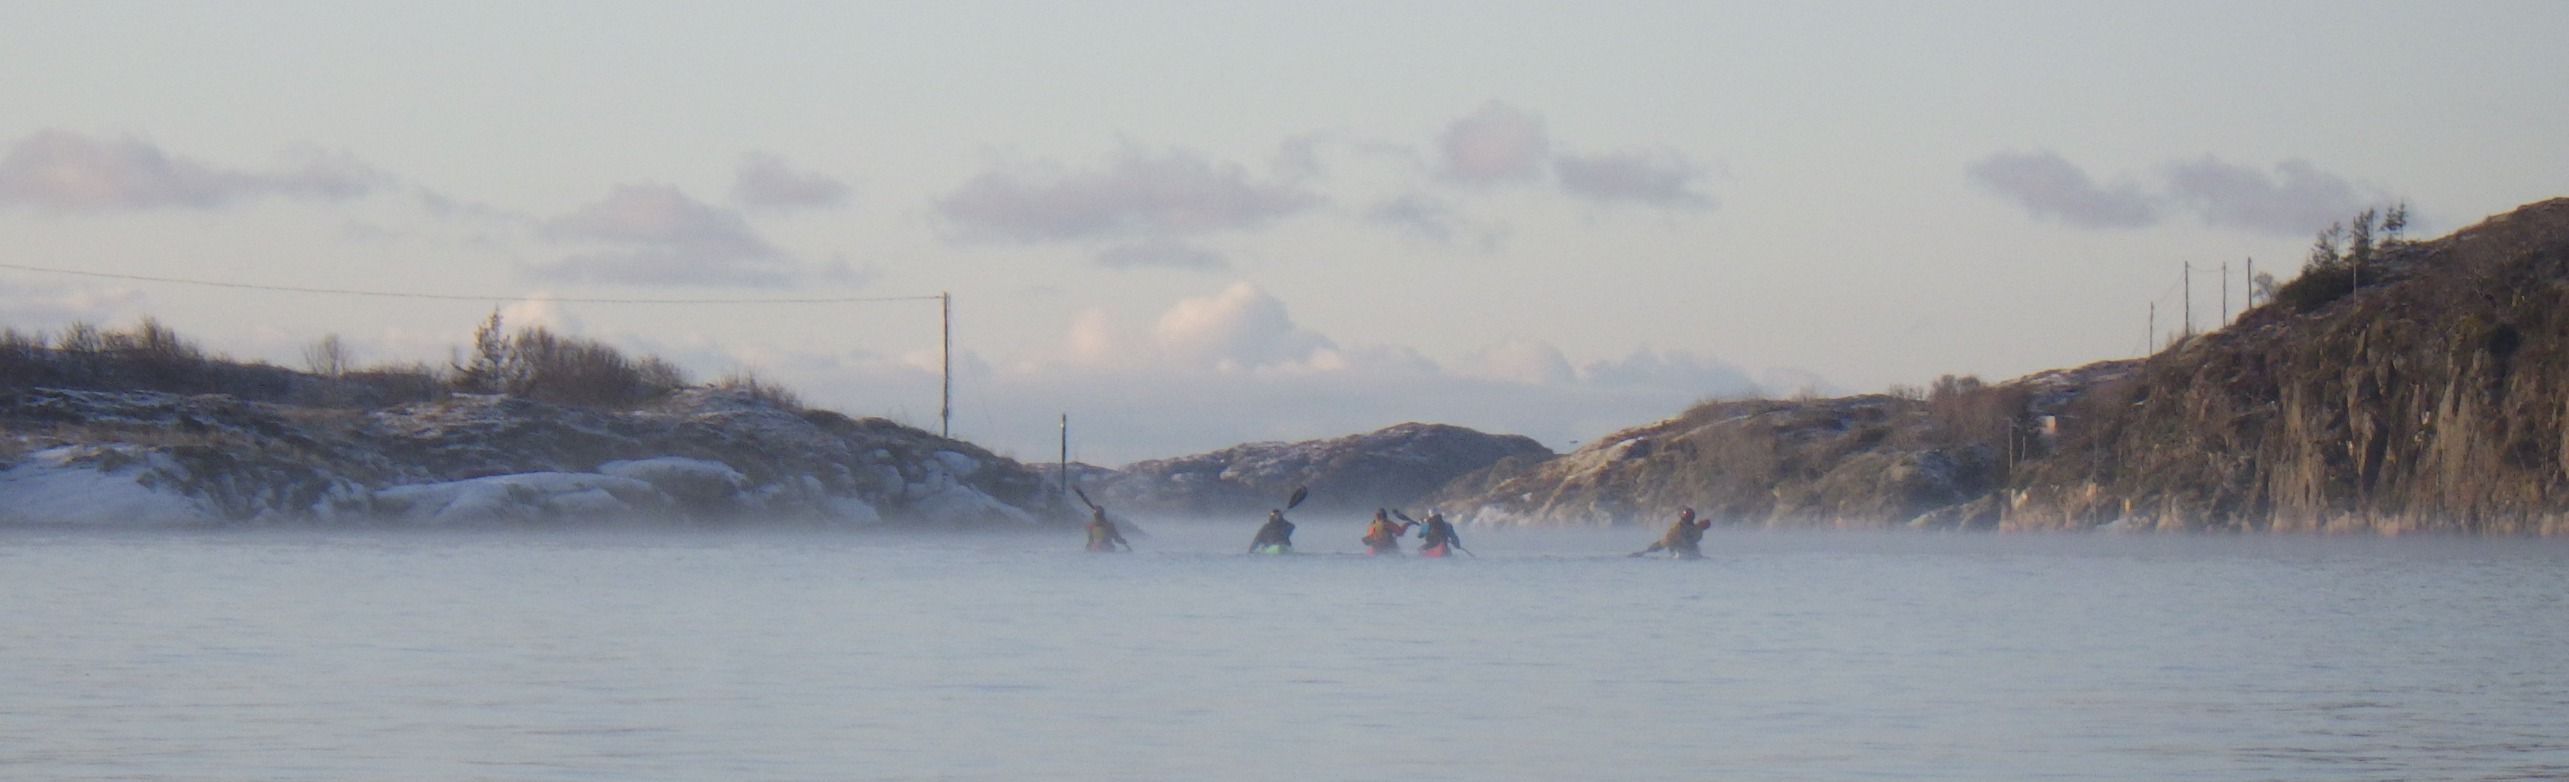 Paddling at -10'C at Hitra, on the way to rockhopping